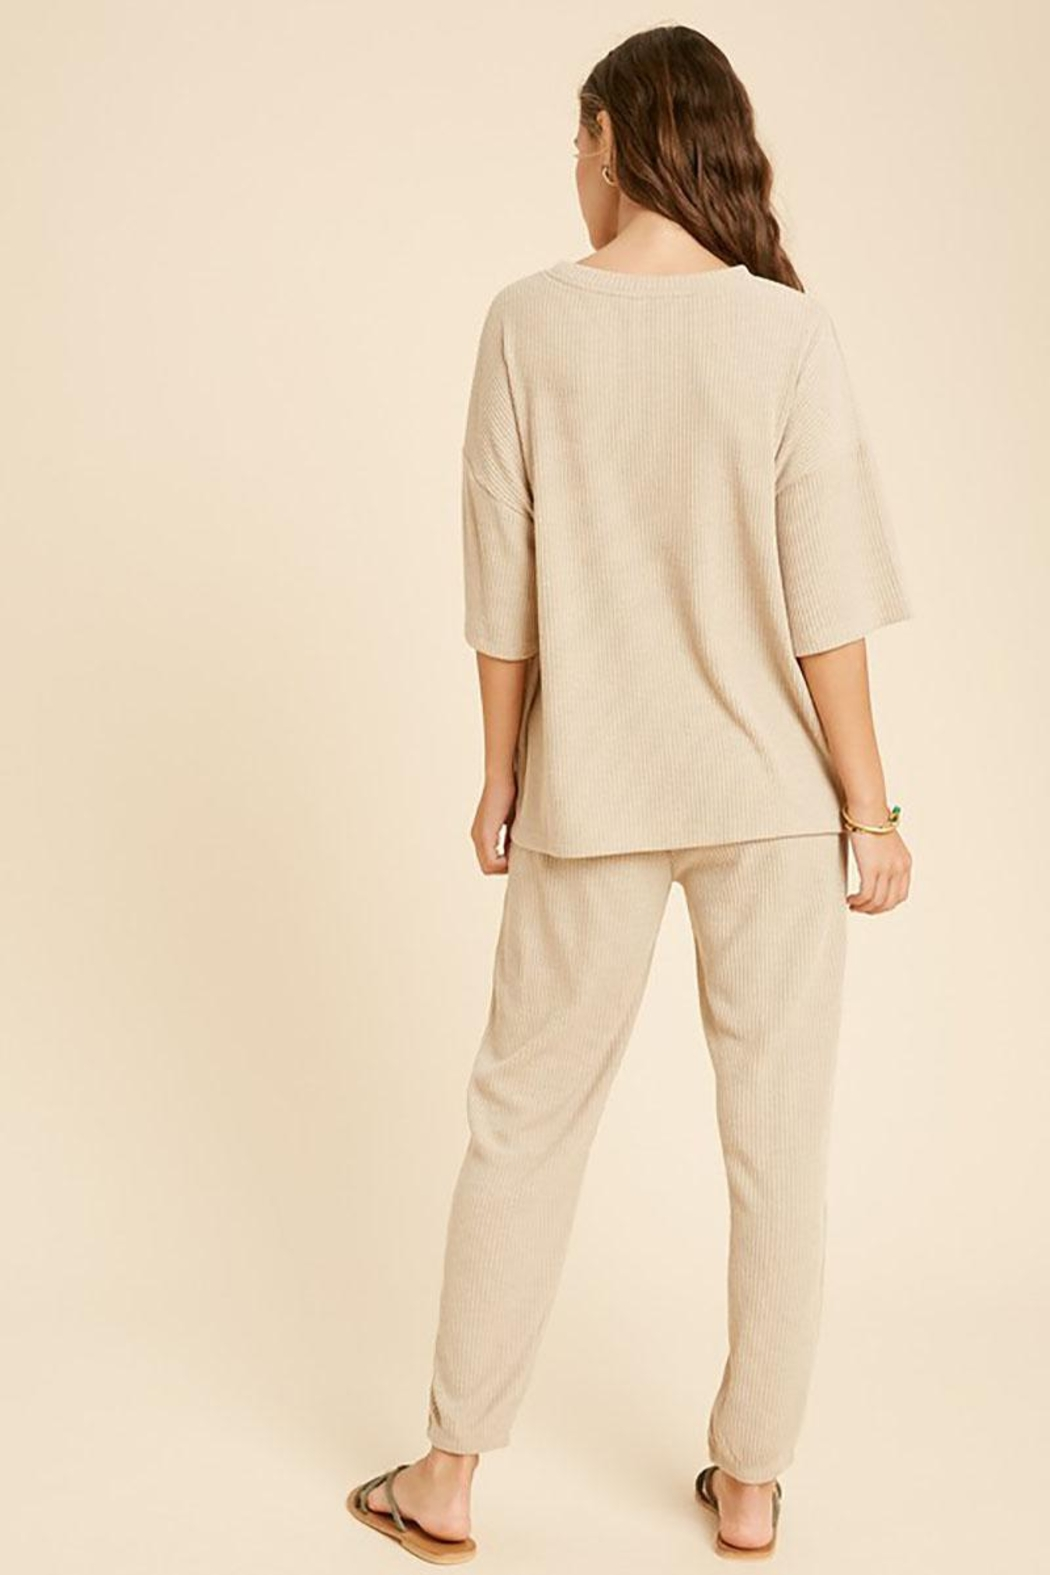 Mint Cloud Boutique Ribbed Casual Loungewear Set - Side Cropped Image